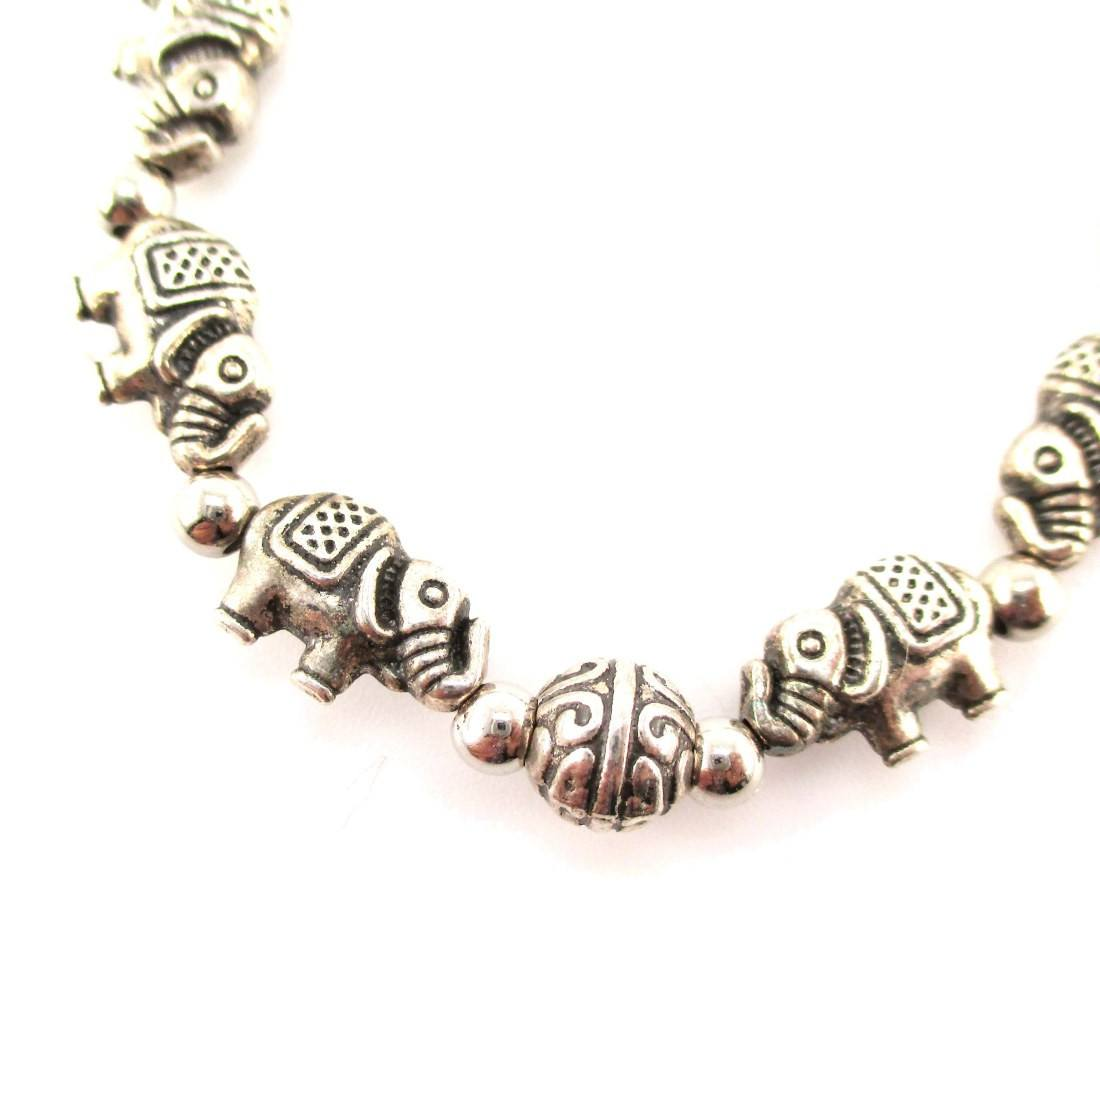 Elephants Beads Shaped Charm Bracelet in Silver | Animal Jewelry